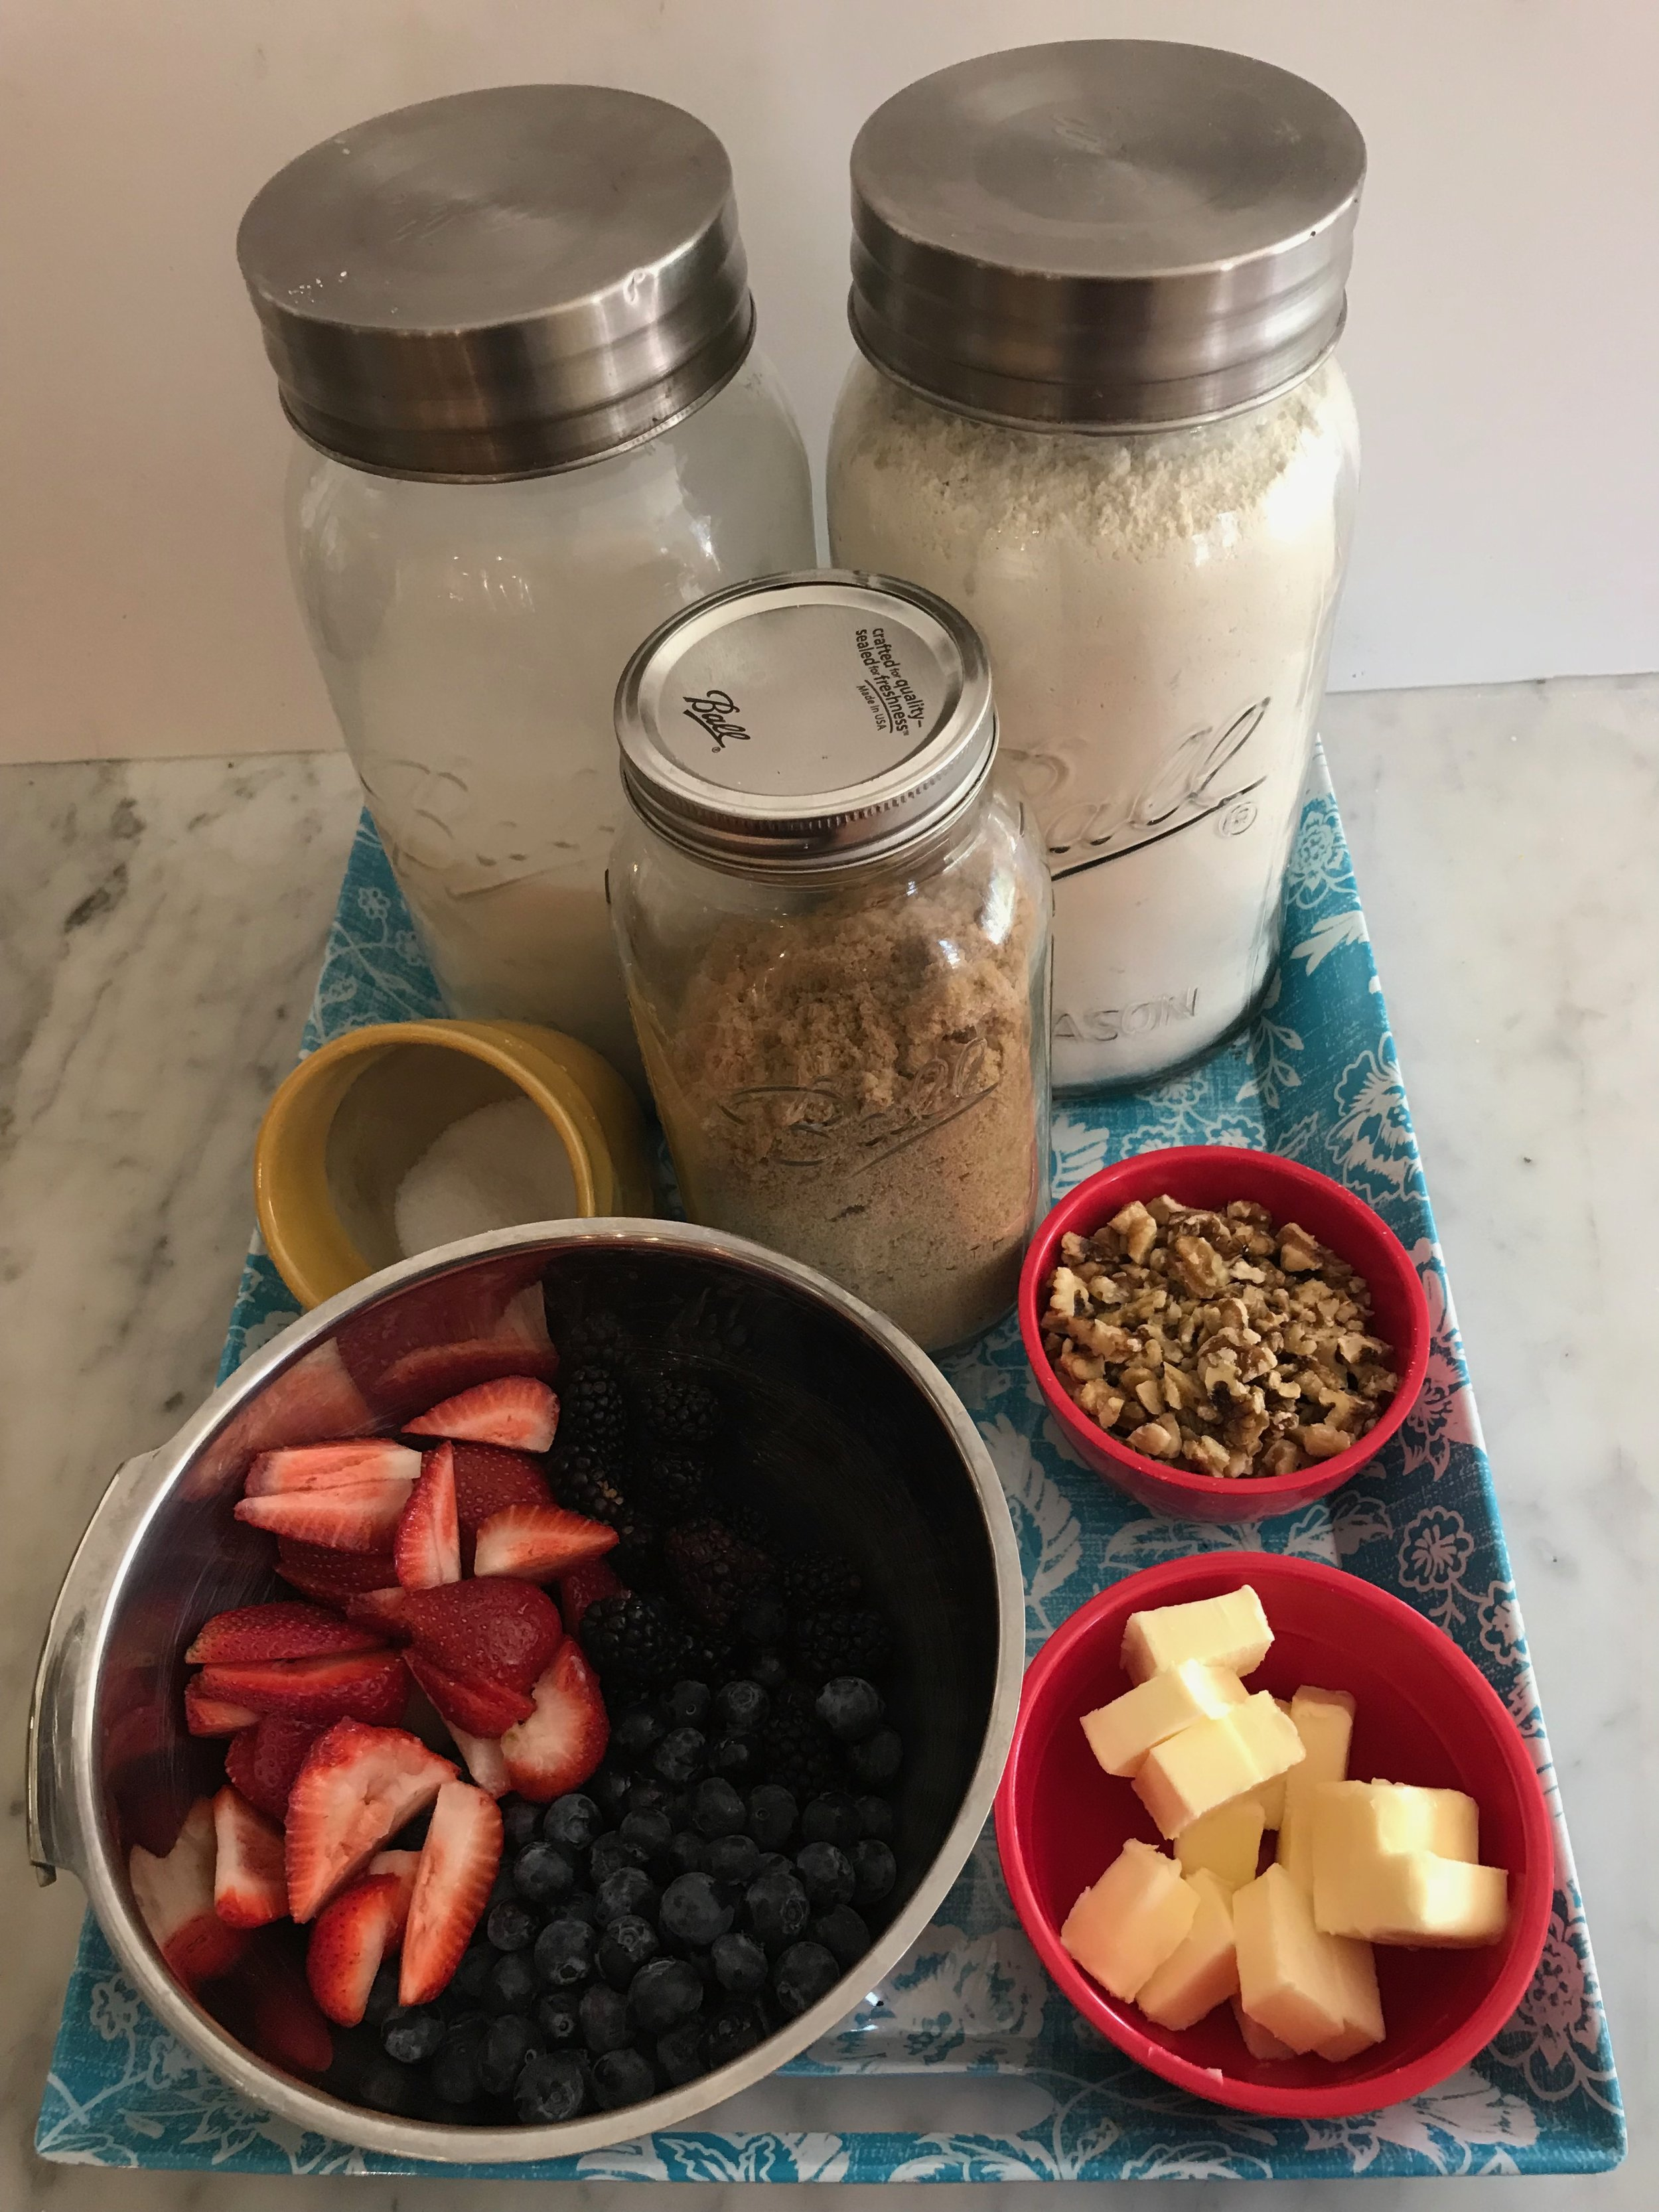 Ingredients - 6 cups berries: blackberries, blueberries, raspberries, or strawberries, washed and cut into pieces½ cup granulated sugarCrumble:1¼ cup all purpose flour2/3 cup golden brown sugarPinch of salt10 tablespoons cold butter, cut into pieces.1½ cups coarsely chopped toasted nuts: walnuts, pecans, or almonds1 pint vanilla ice cream